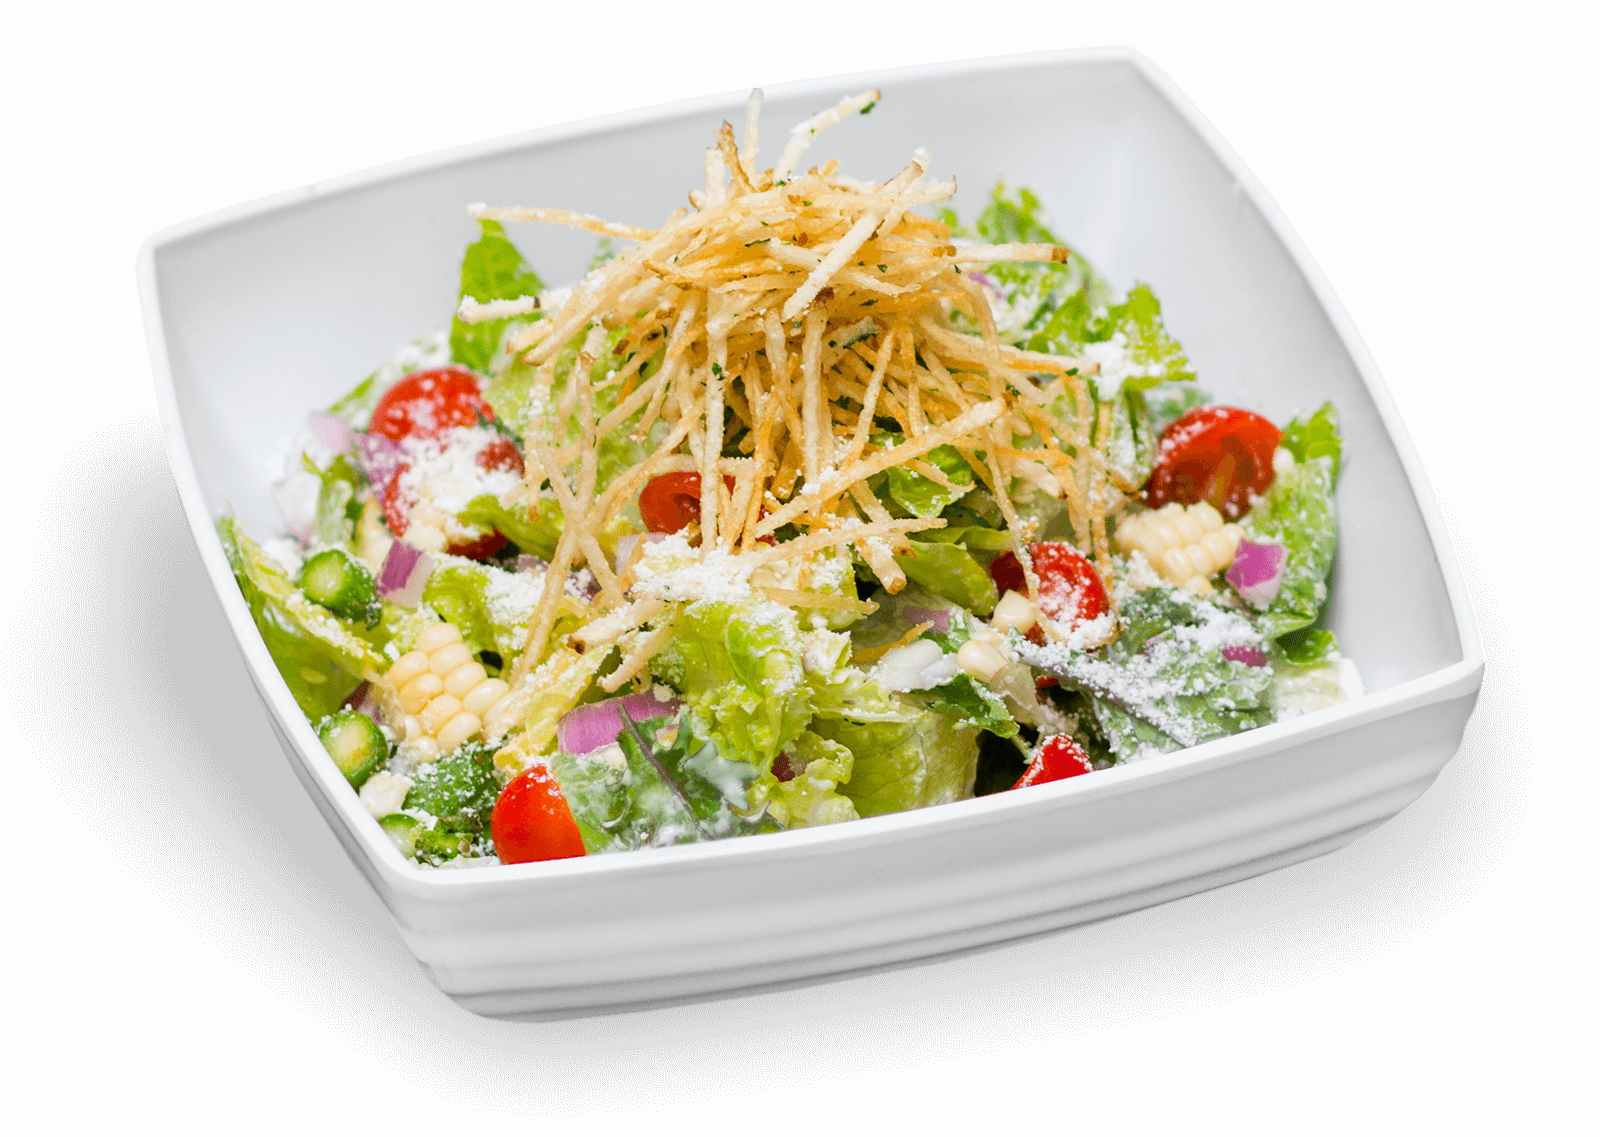 Spring Caesar Salad, Available for a Limited Time at all Burger Lounge locations